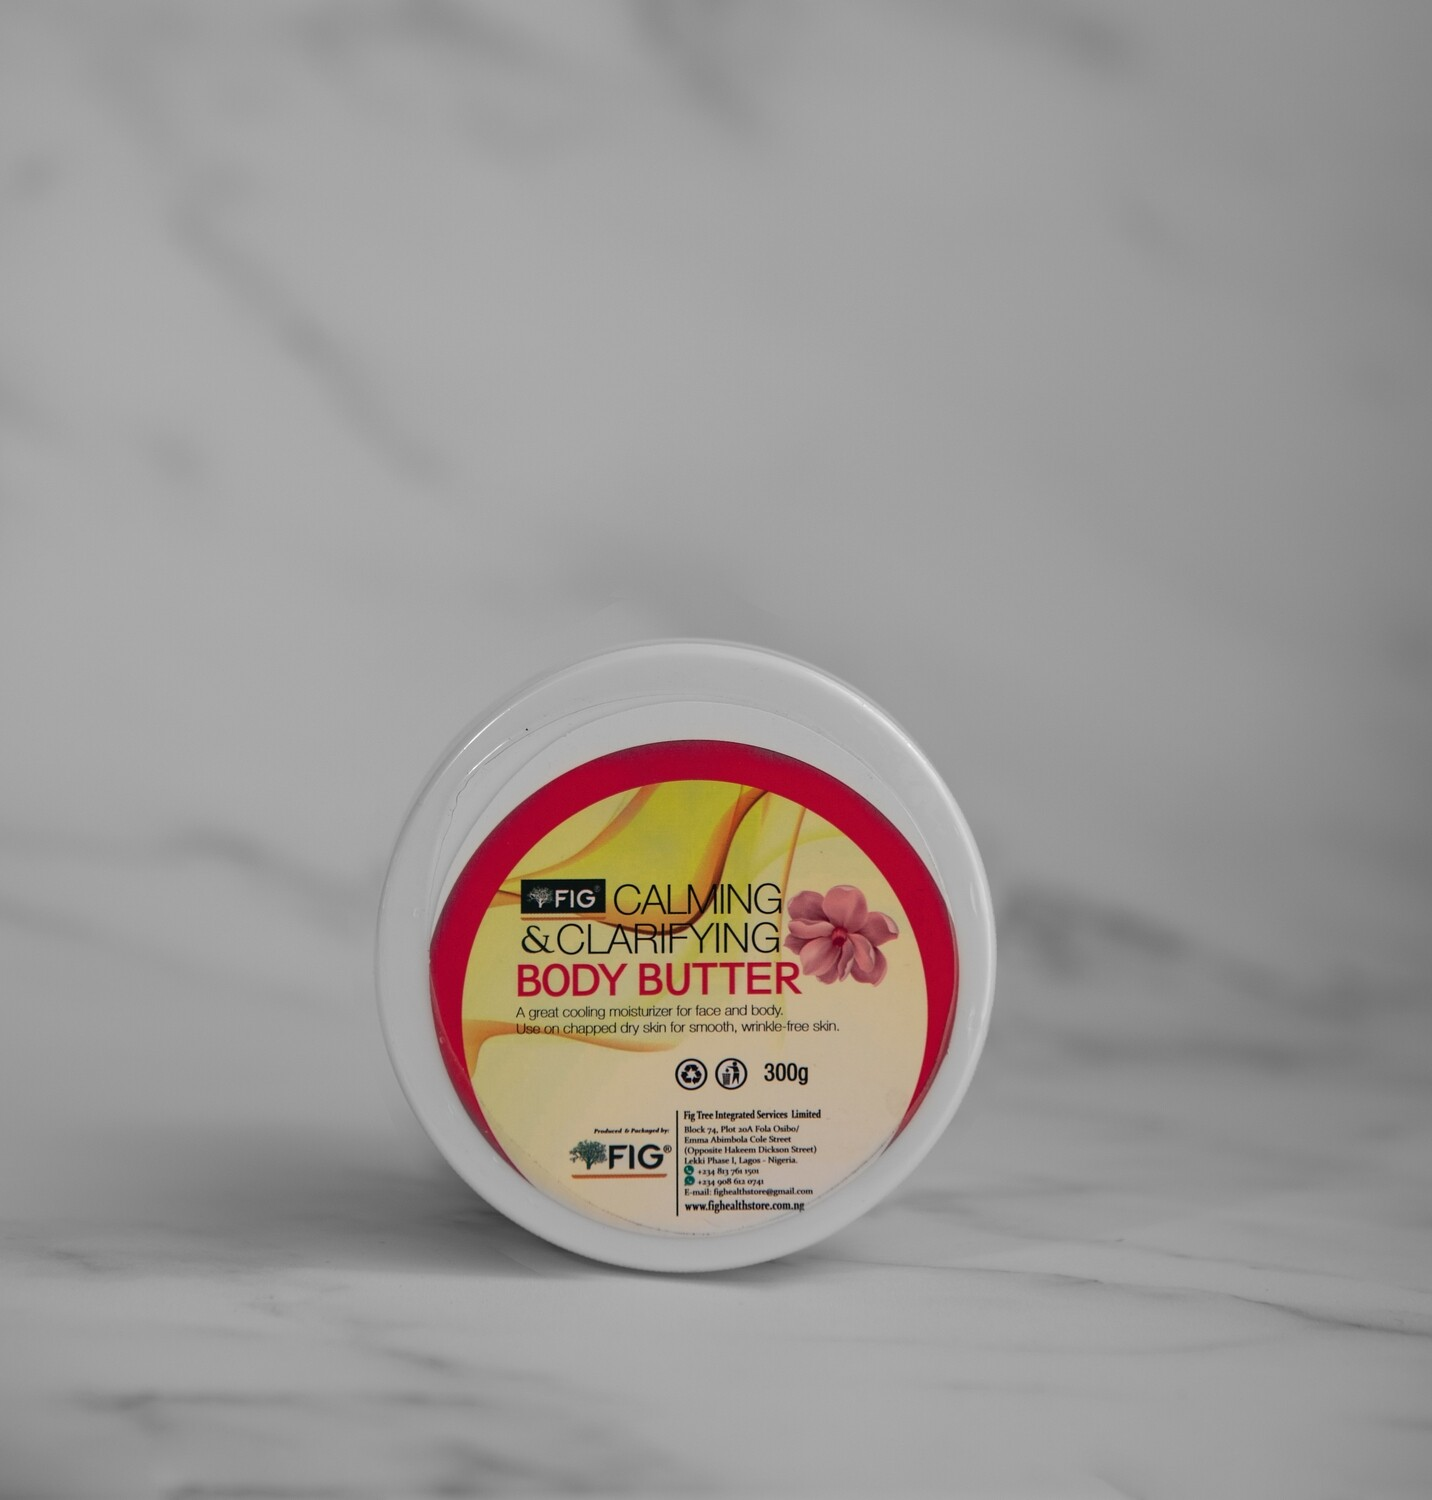 FIGTREE CALMING AND CLARIFYING BODY BUTTER (75G)